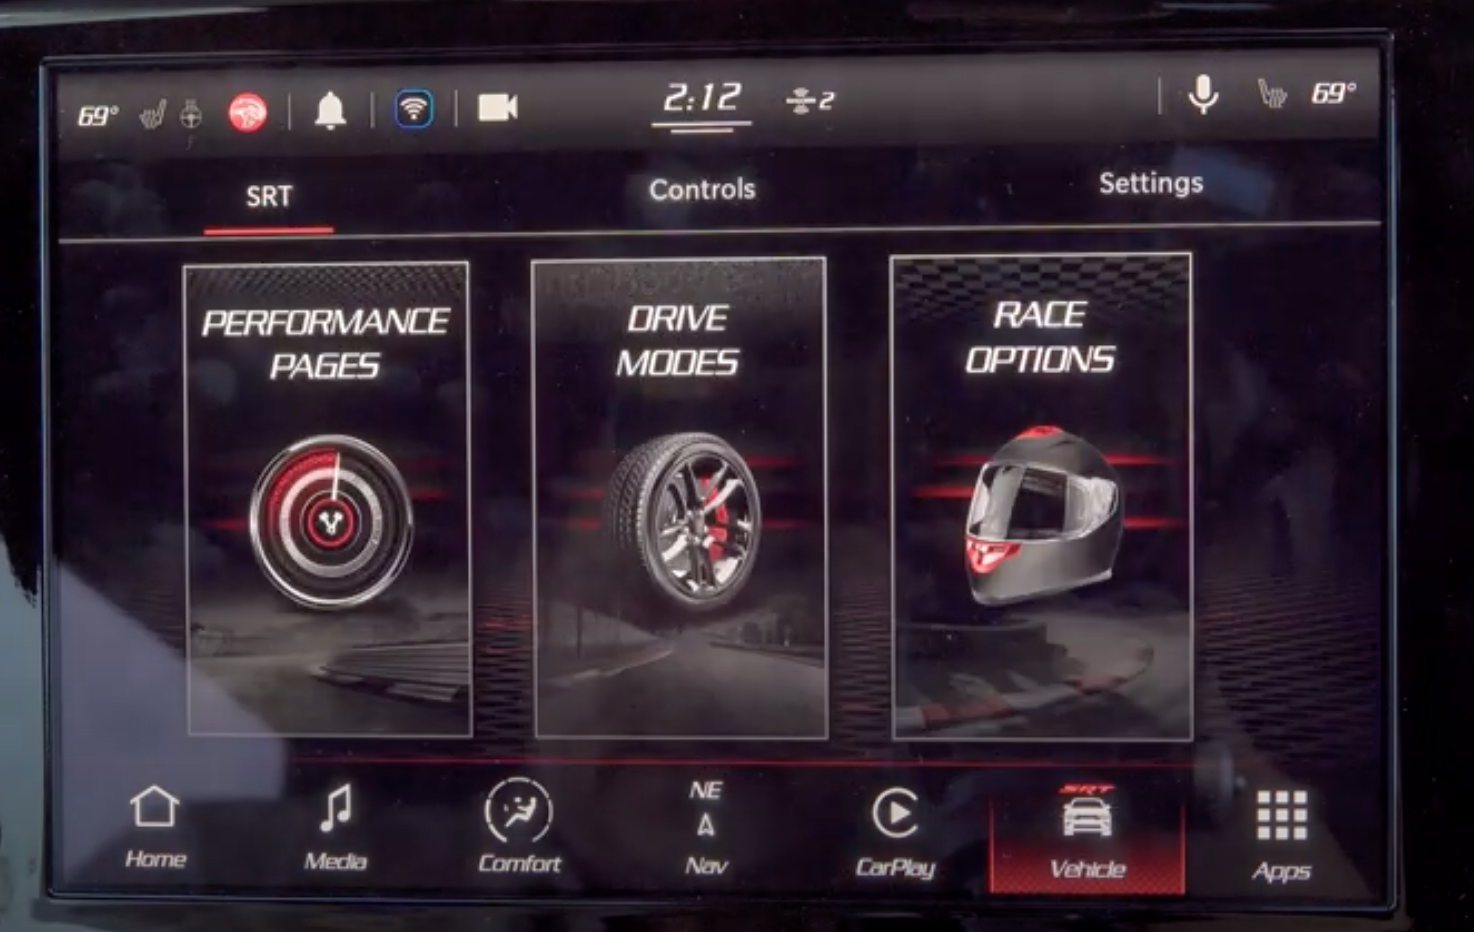 Vehicle information screen with three options to see, performance pages, drive modes and race options